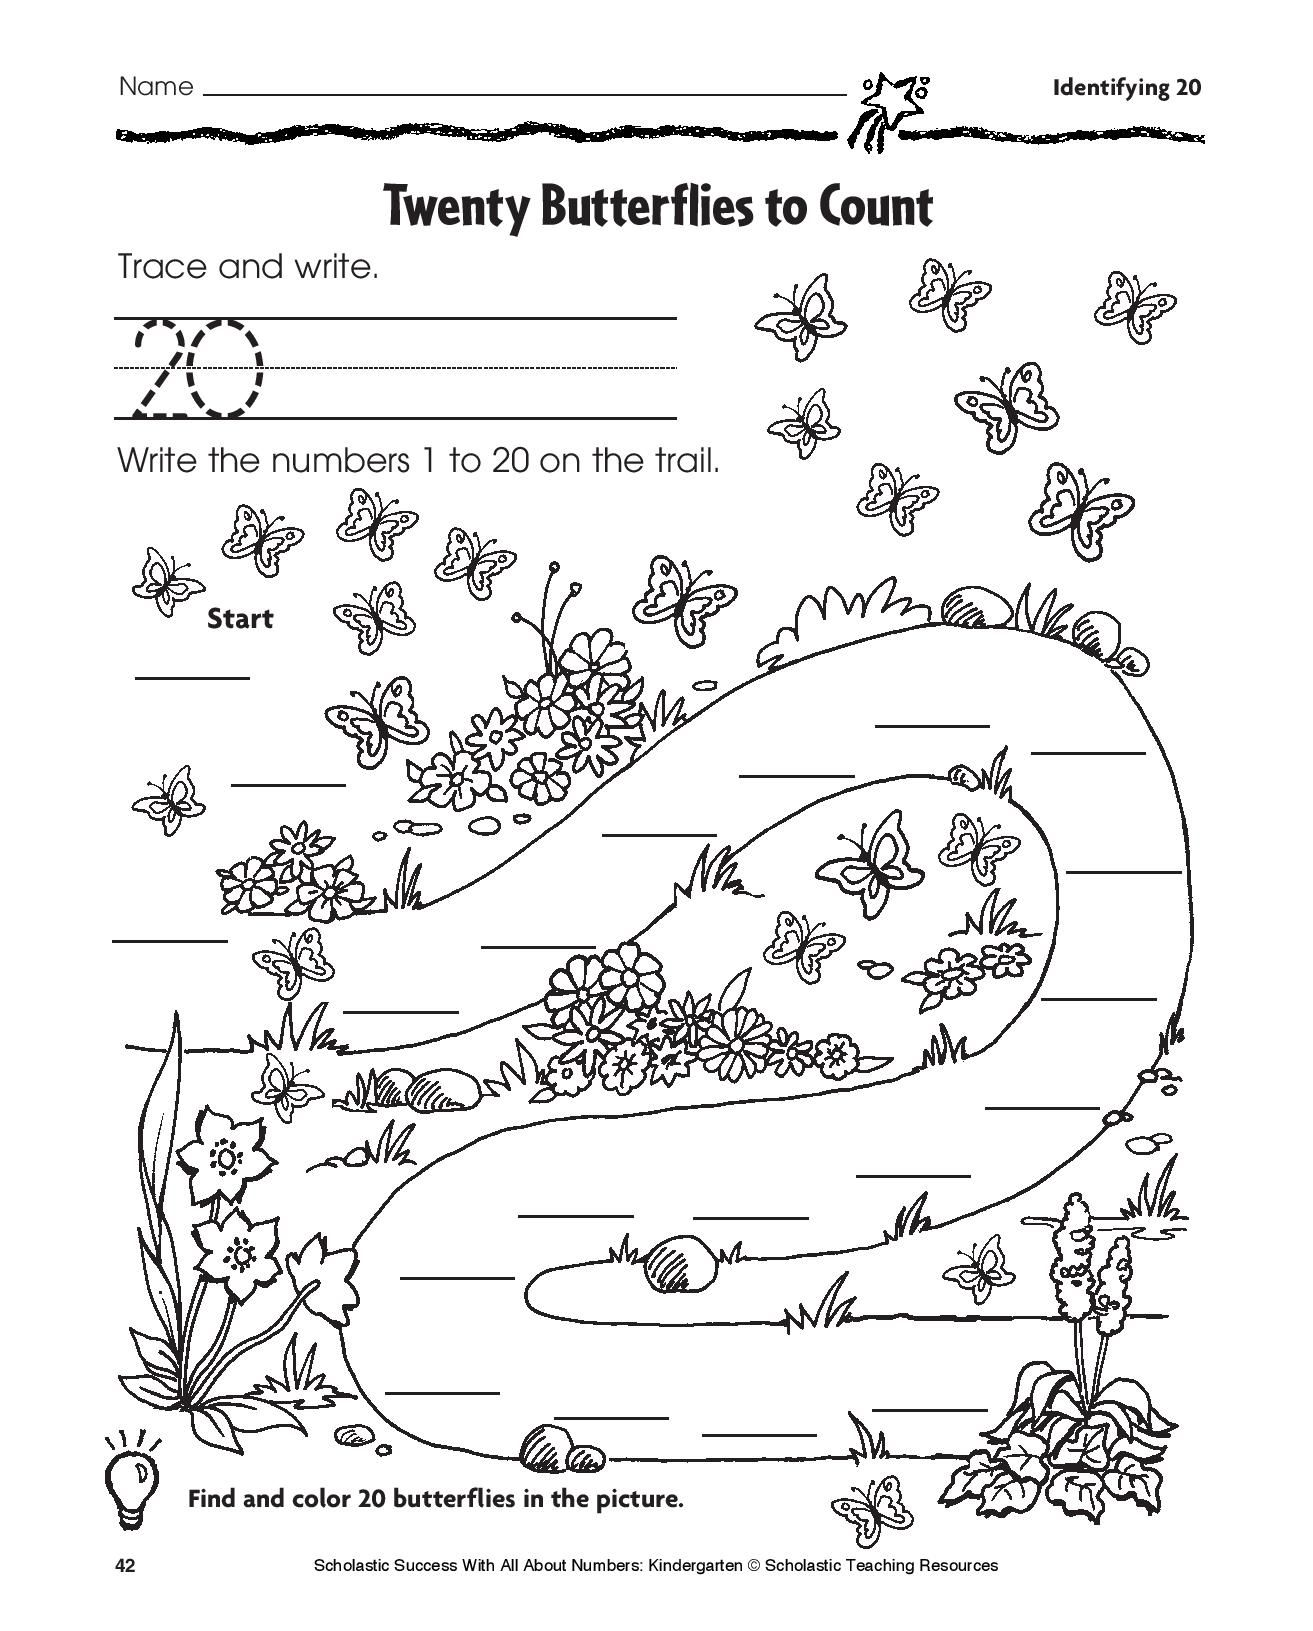 This Easy Printable Math Sheet Will Help Young Children